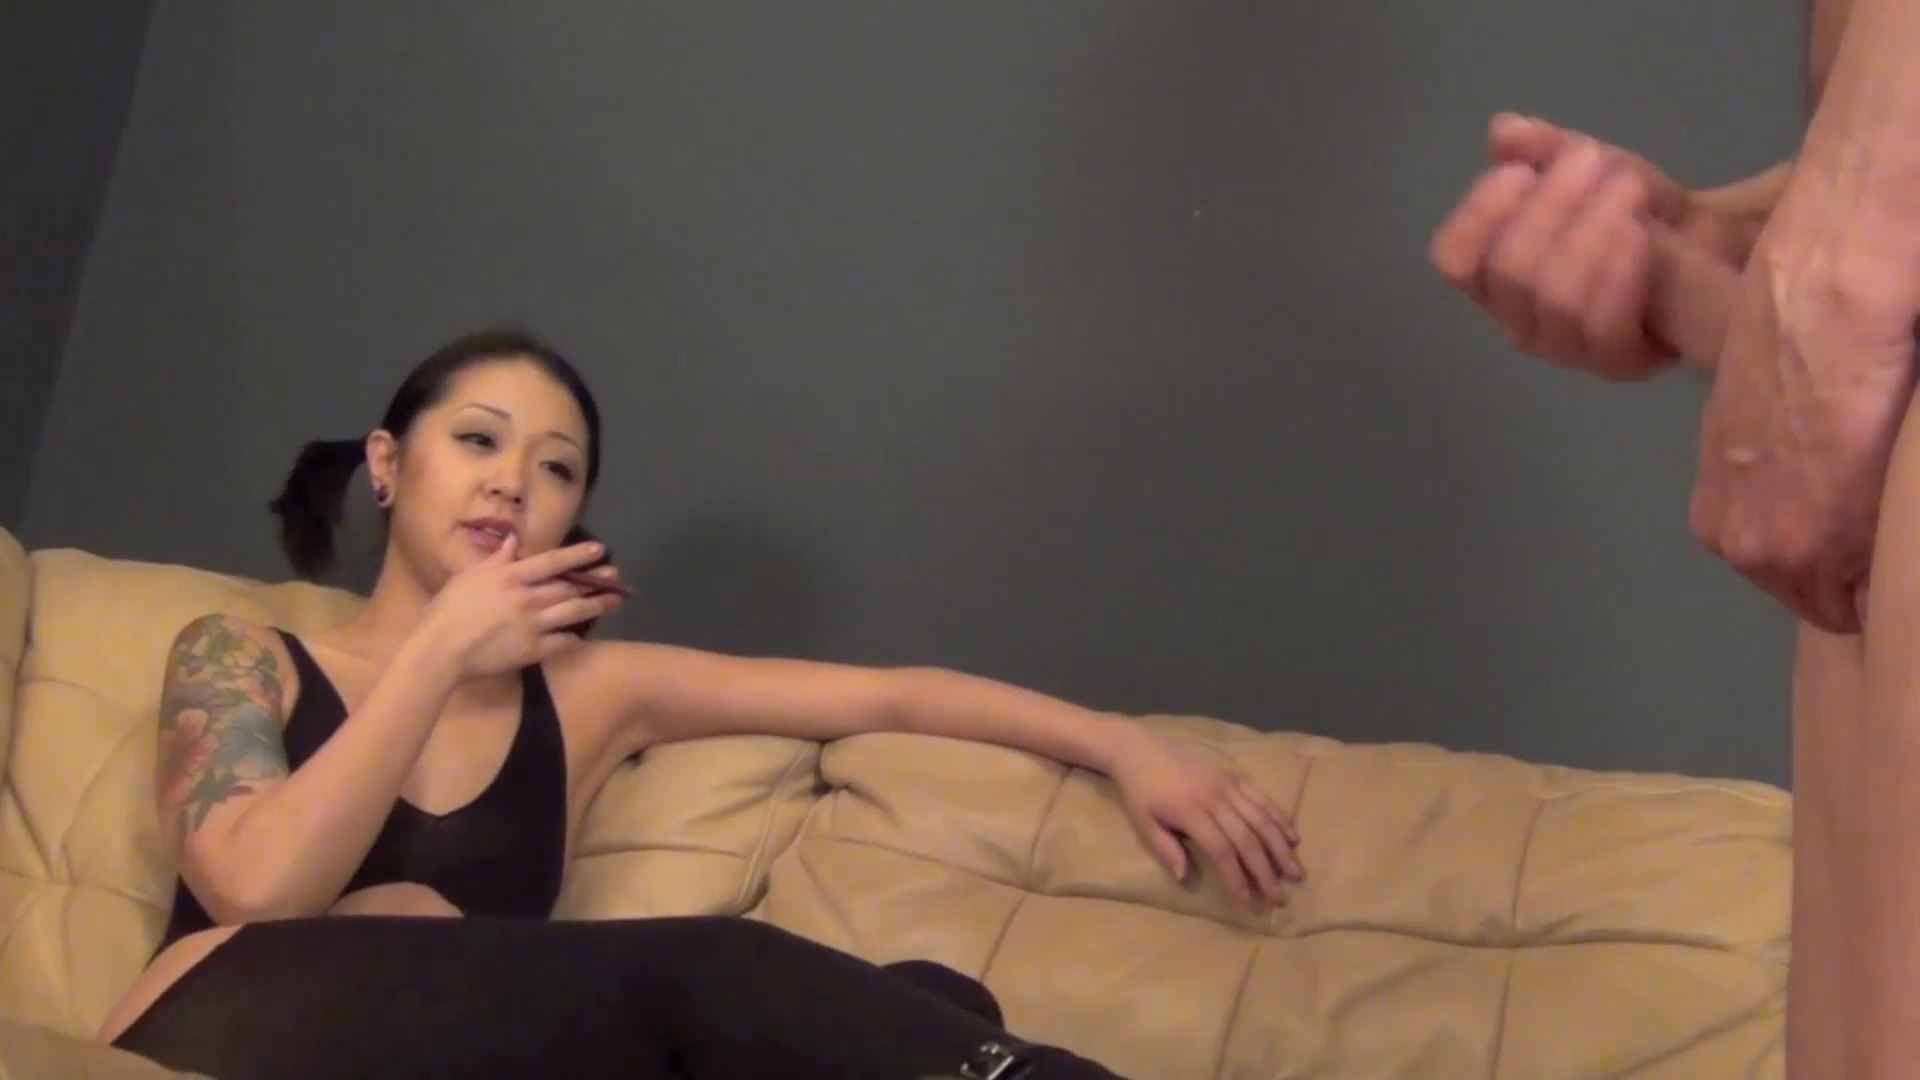 Goddess Saya Song In Scene: THE OBEDIENT IMPOTENT! - ASIAN MEAN GIRLS - FULL HD/1080p/MP4